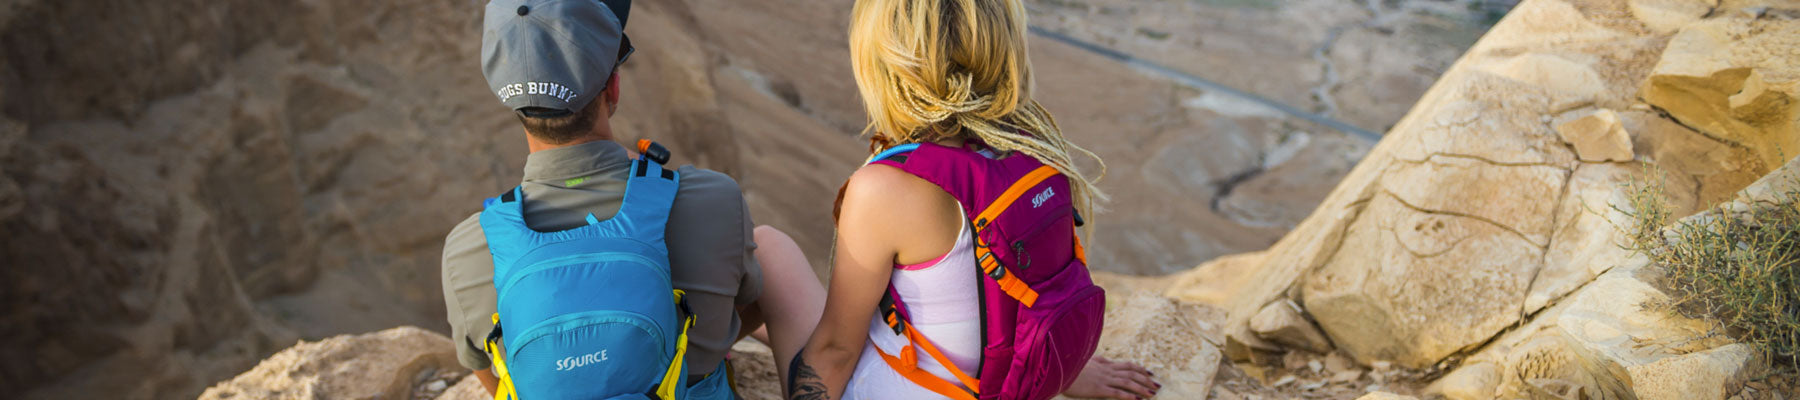 Source Hydration Packs